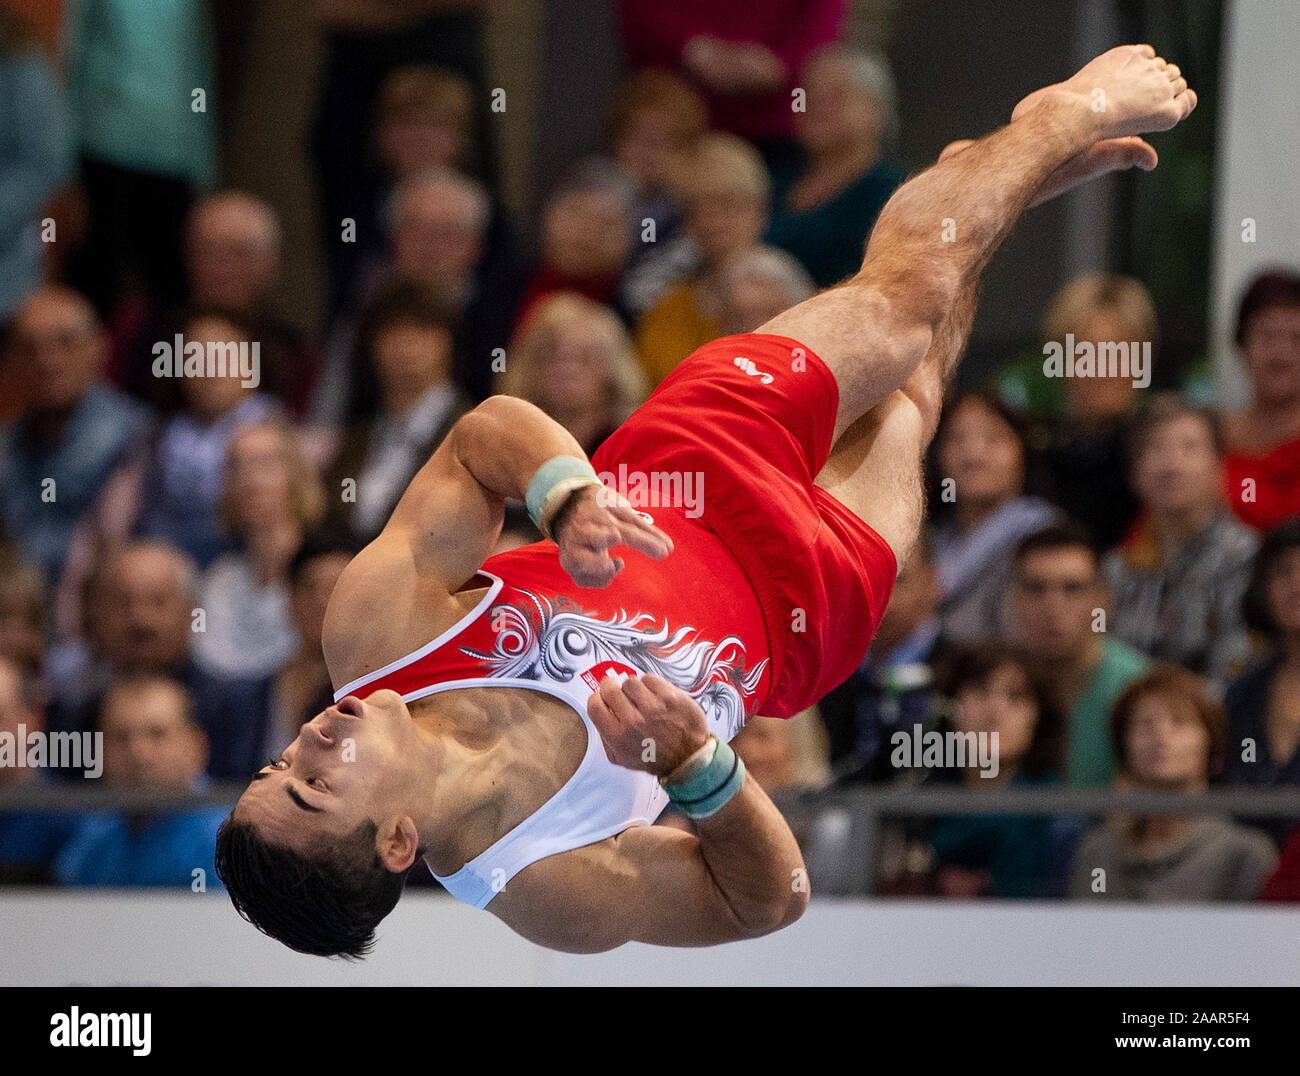 Cottbus, Germany. 23rd Nov, 2019. Gymnastics: World Cup, 44th International Champions' Tournament, Men's Final: Gymnast Andren Frey from Switzerland performs on the ground. Credit: Monika Skolimowska/dpa-Zentralbild/dpa/Alamy Live News Stock Photo